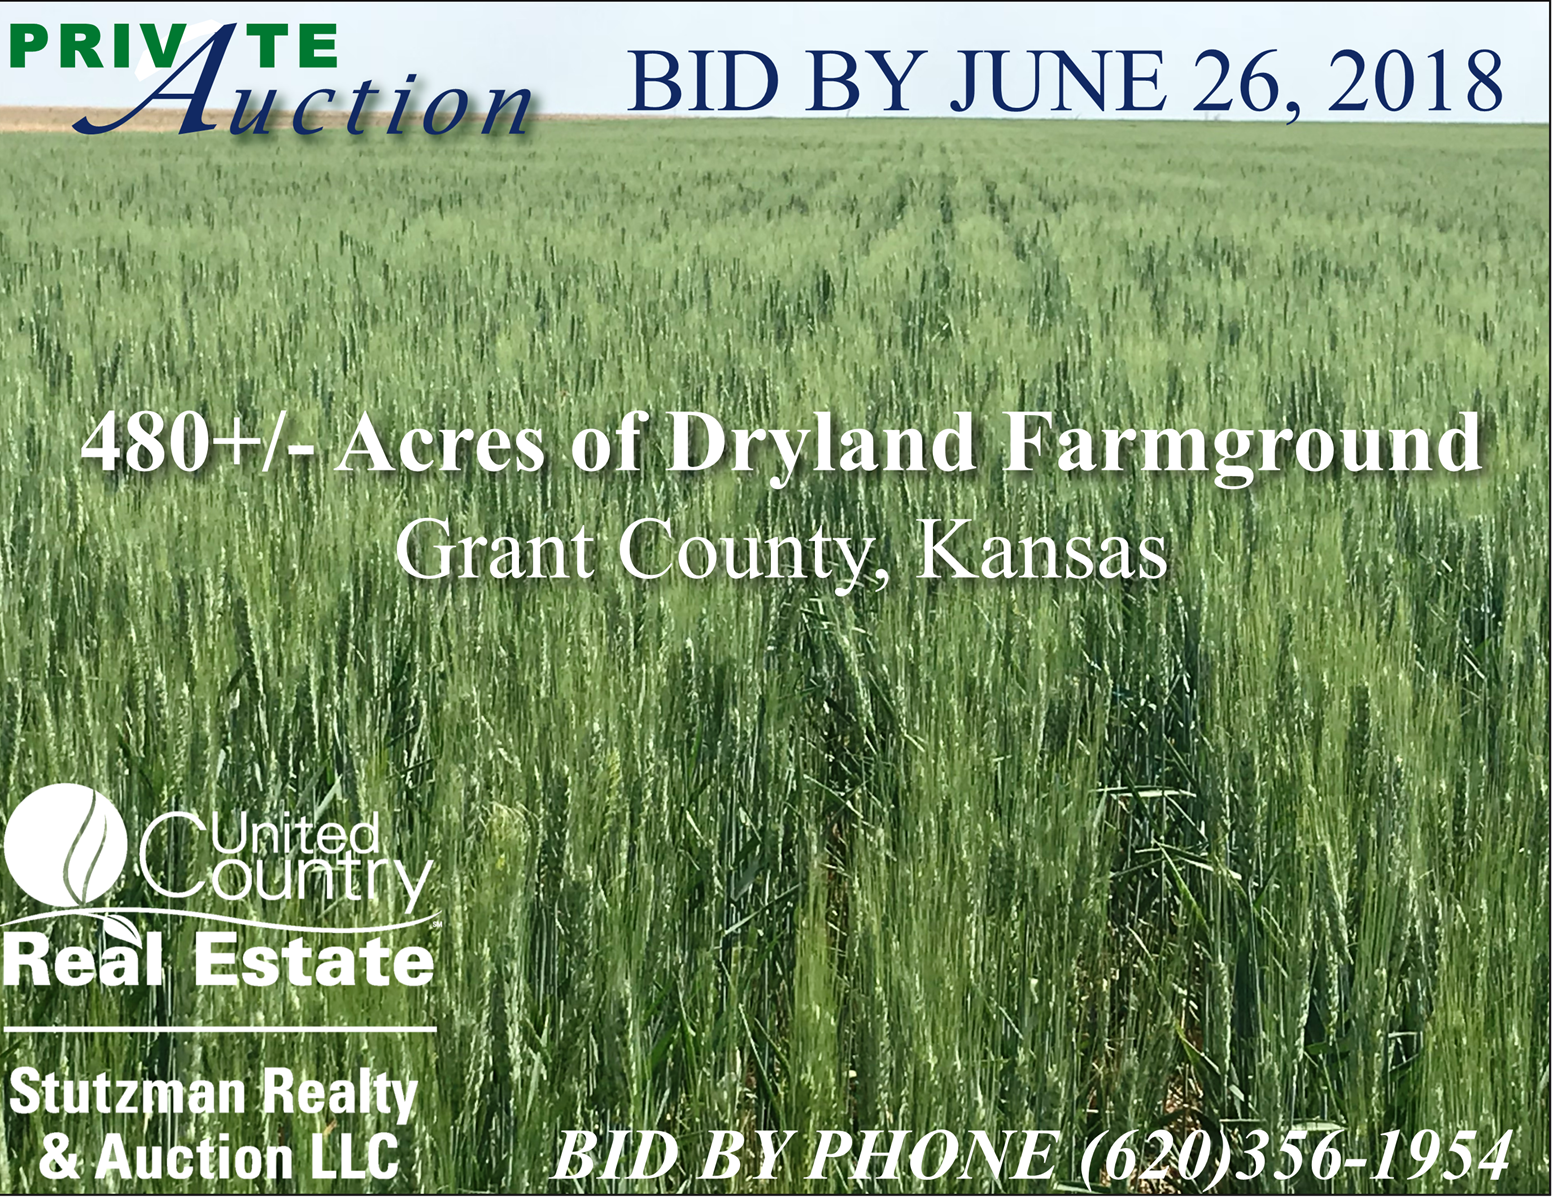 PRIVATE AUCTION - 480+/- ACRES OF DRYLAND FARMGROUND